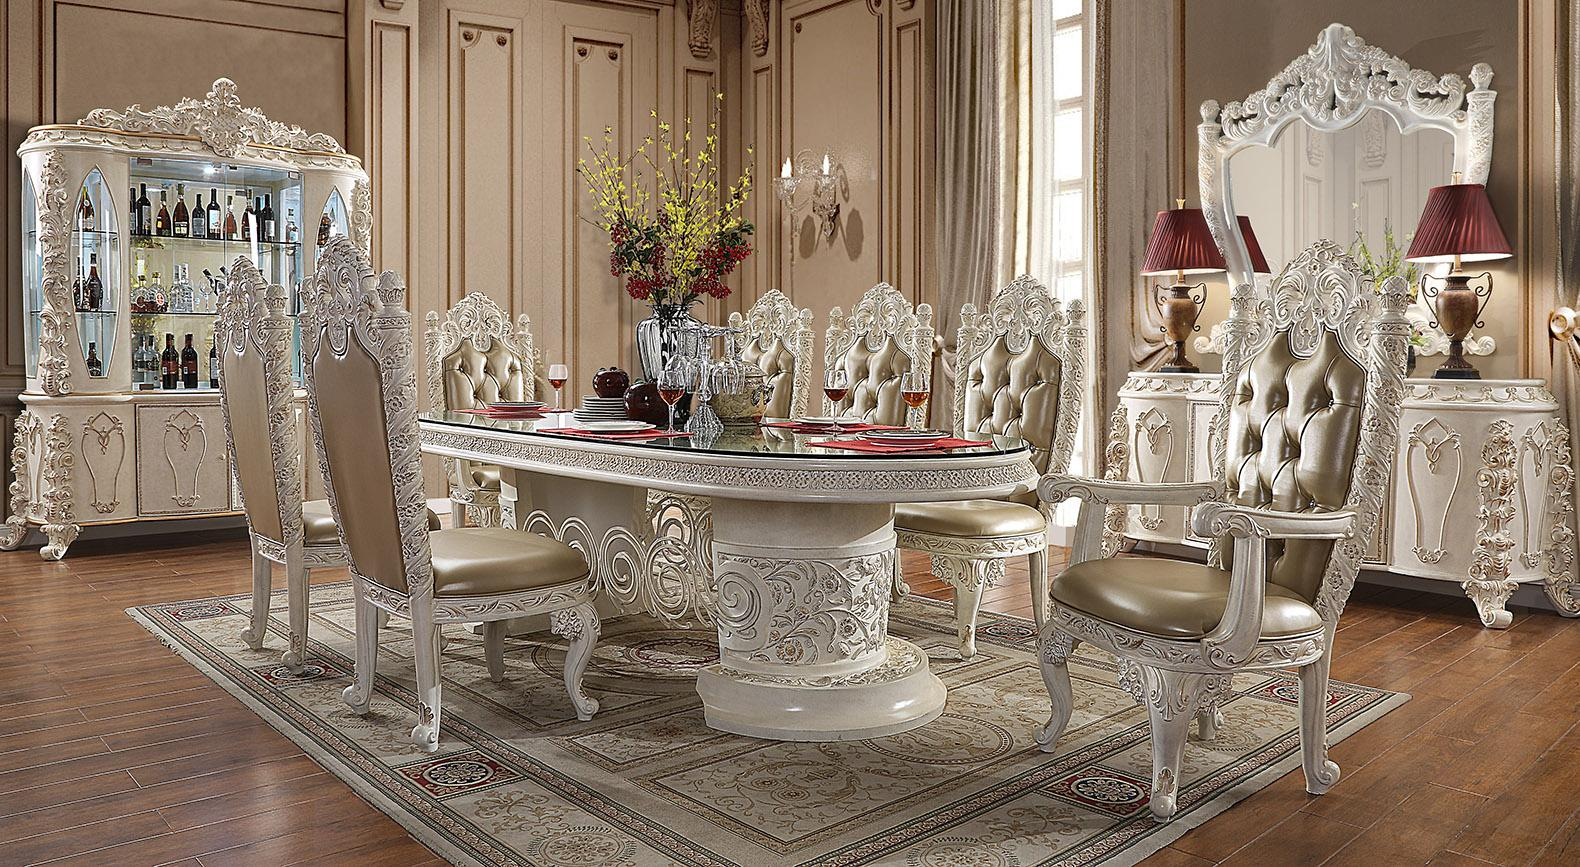 Traditional Gold, Antique White Leather and Wood Dining Table Set 9 pcs HD-1806 by Homey Design